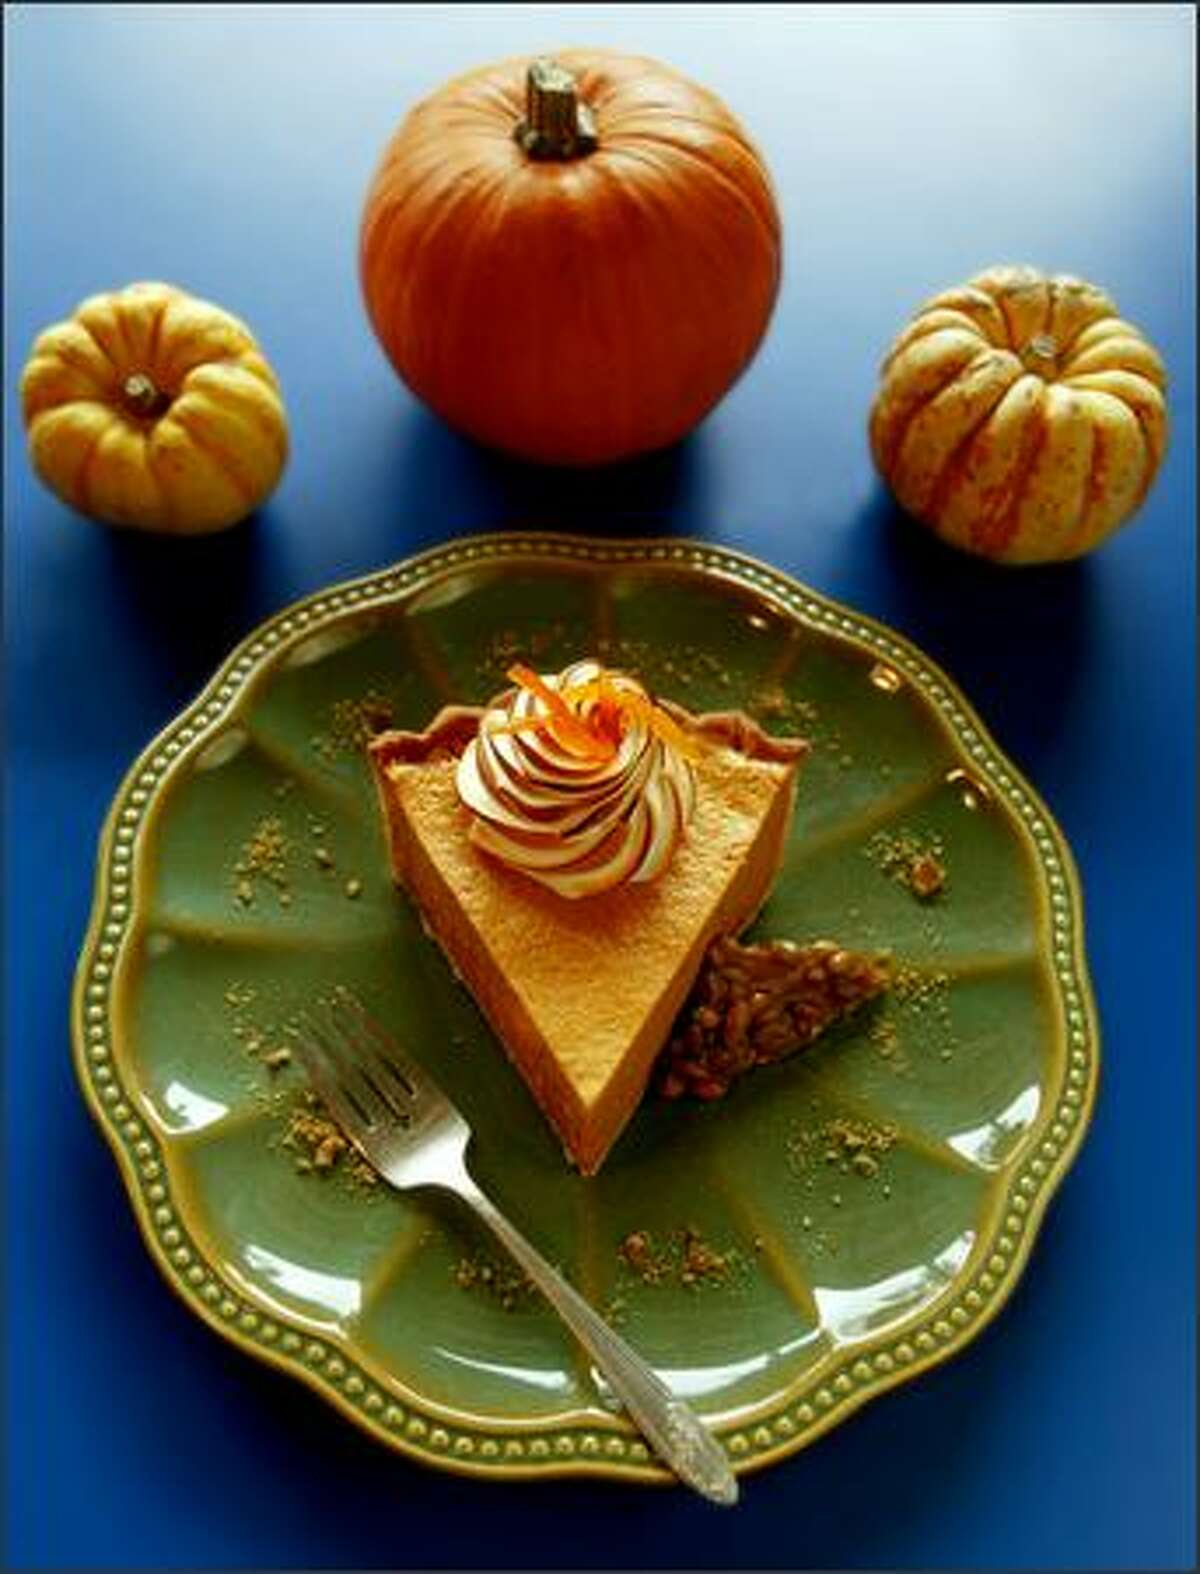 For a lighter holiday dessert, a meringue-topped Pumpkin Chiffon Pie and a side of Pumpkin-Seed Brittle fills the bill.